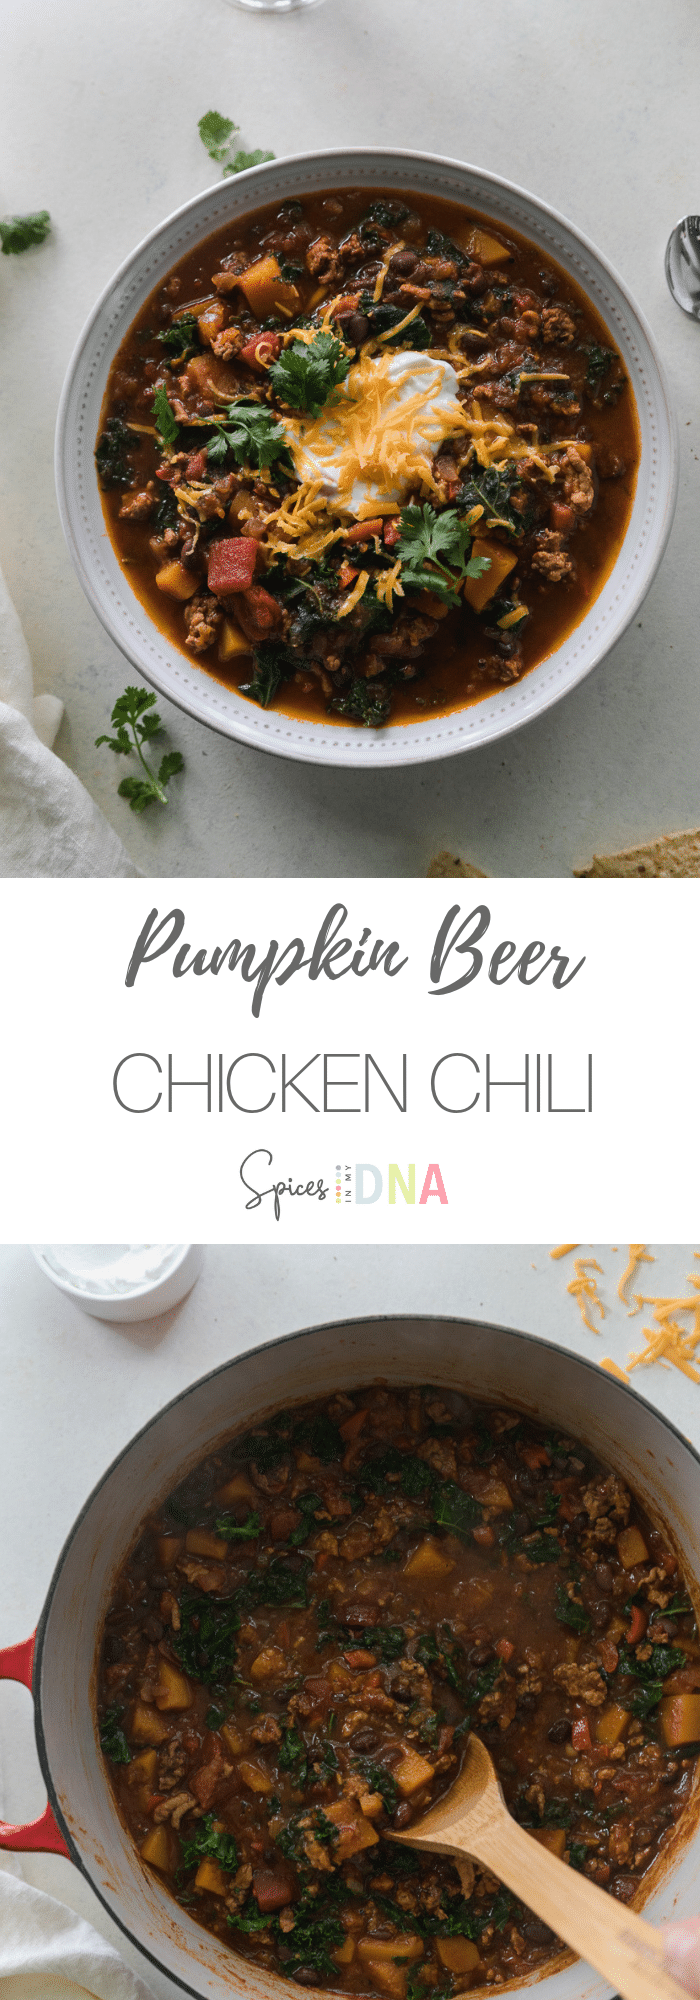 This Pumpkin Beer Chicken Chili with Butternut Squash and Kale is a healthy, hearty chili filled with lean ground chicken, black beans, butternut squash, kale, and your favorite pumpkin beer! It's the perfect mix of your classic chili, and a veggie-forward autumn version! This will forever be one of my favorite meals to make during the chillier months. #chili #pumpkin #beer #butternutsquash